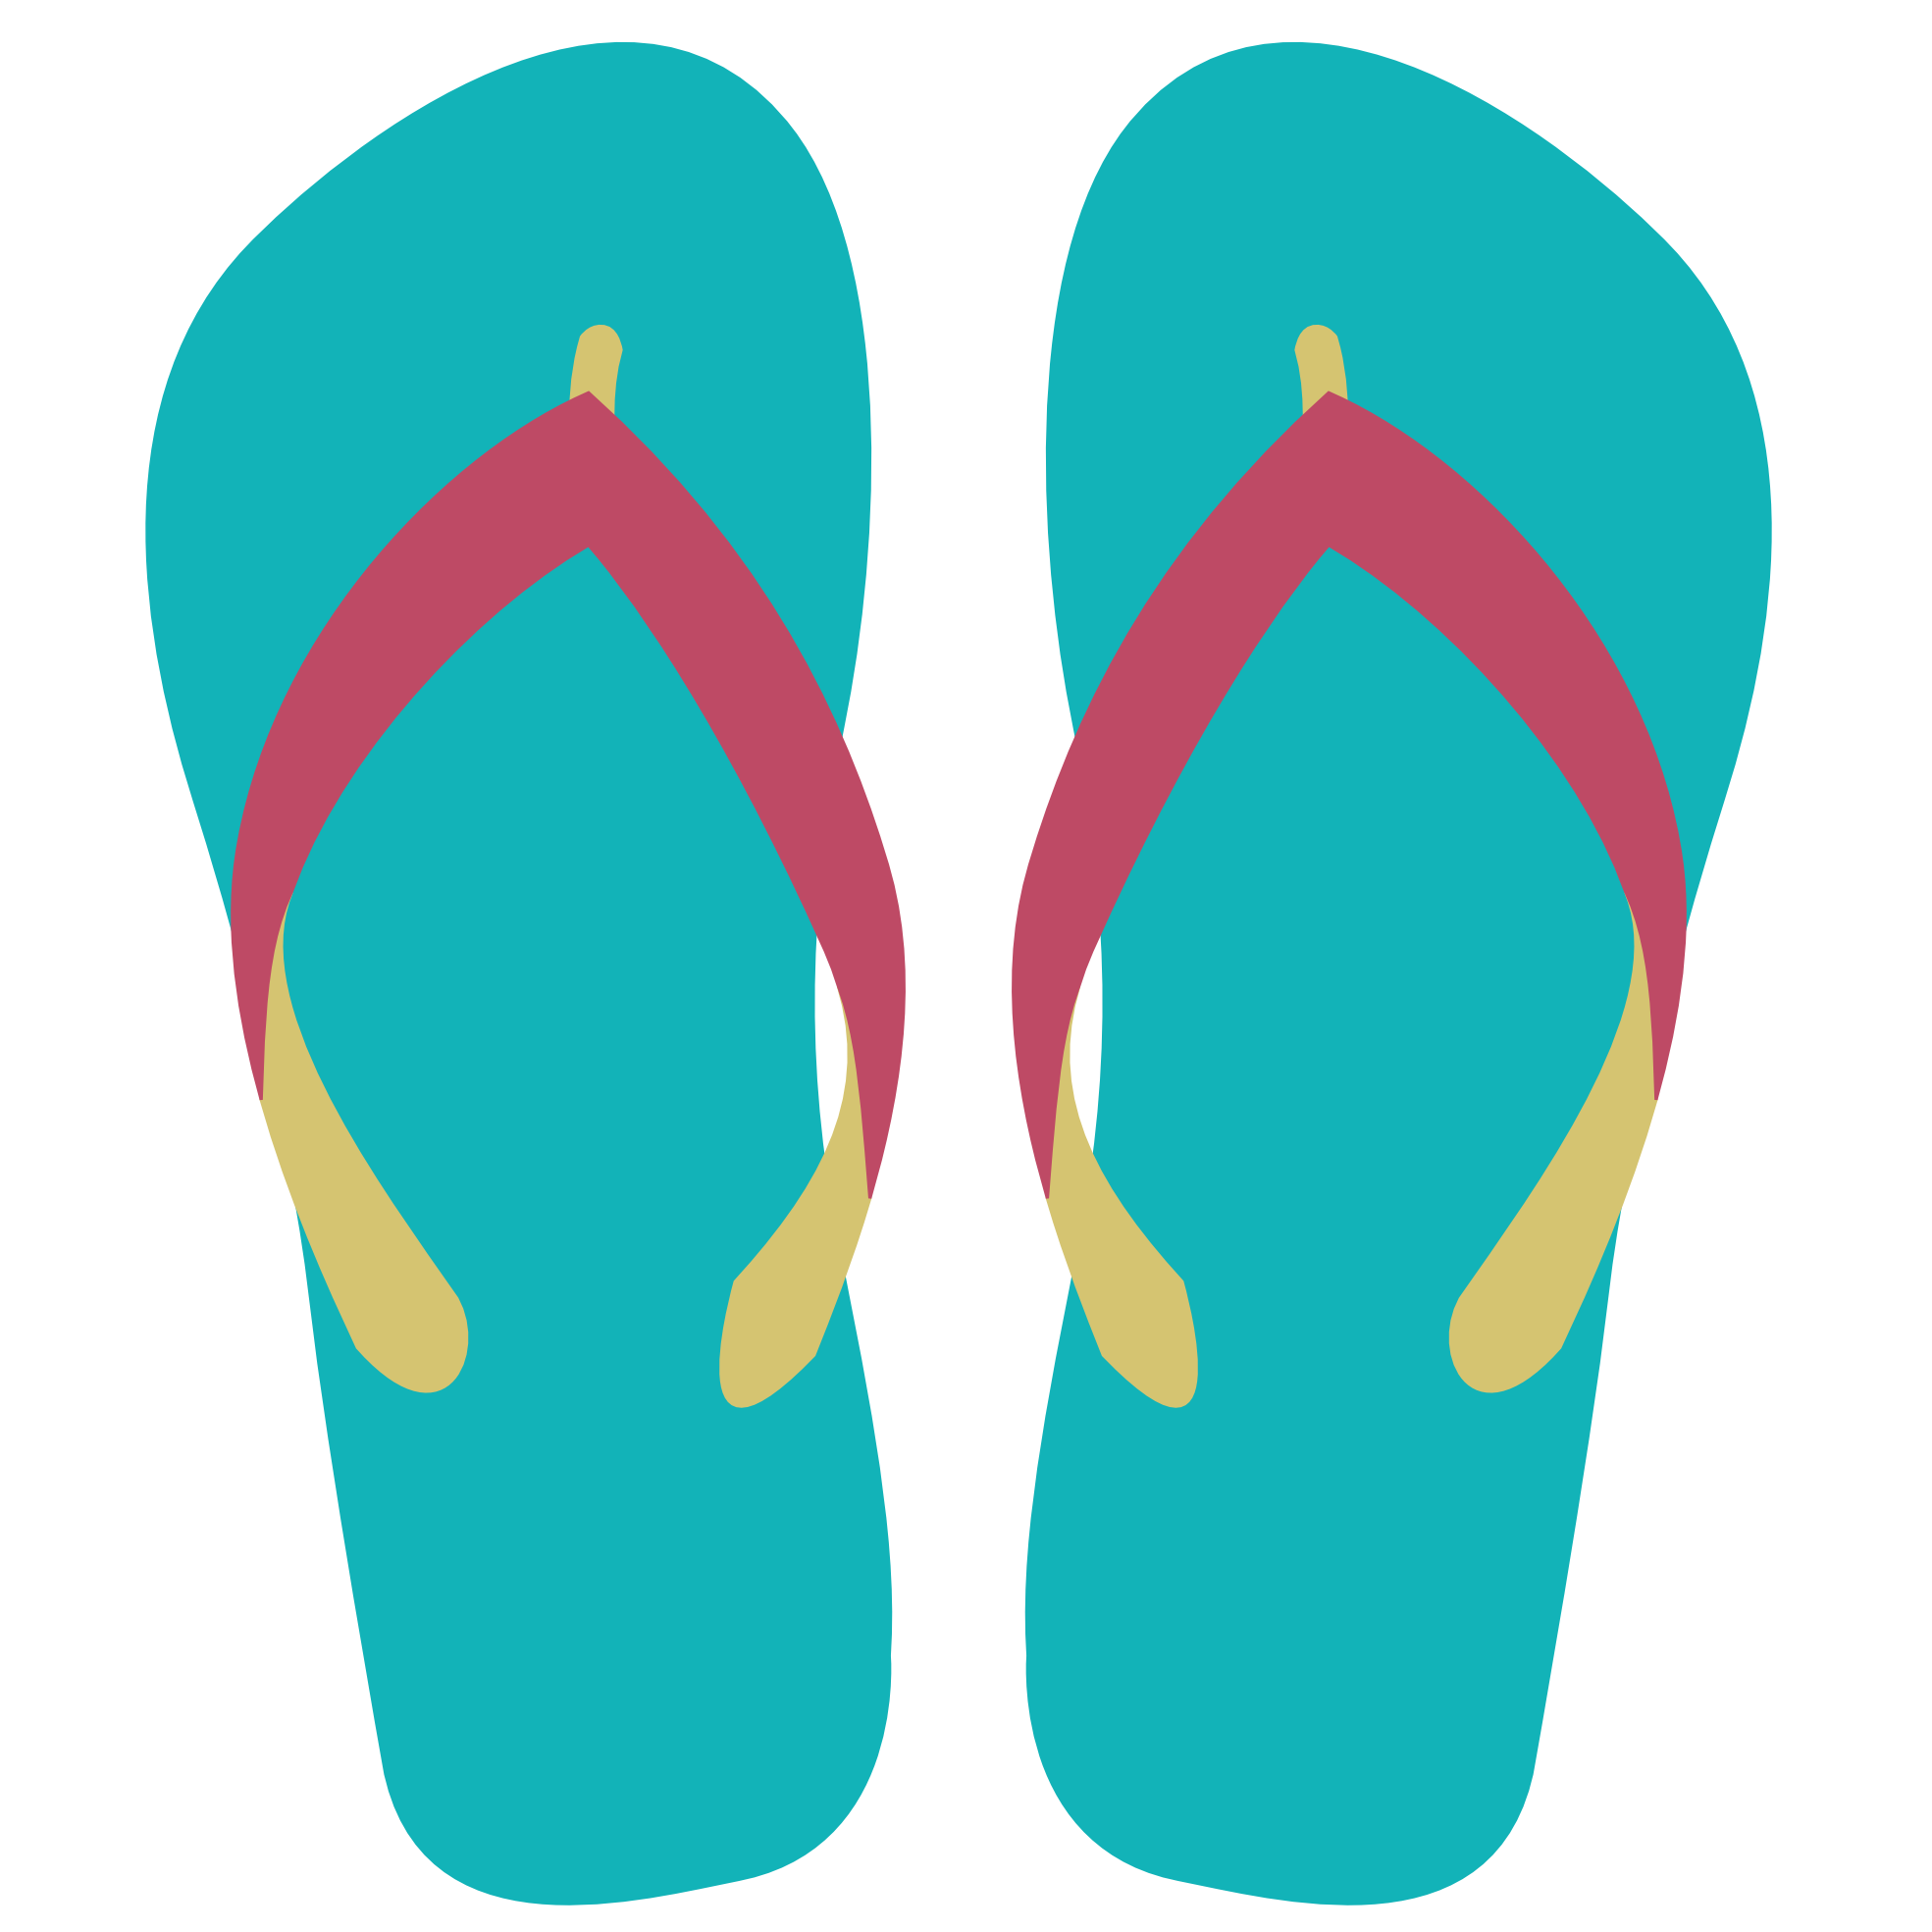 Cartoon Flip Flops Png - Flip-flops Slipper Sandal Cartoon Clip art - Cartoon sandals ...